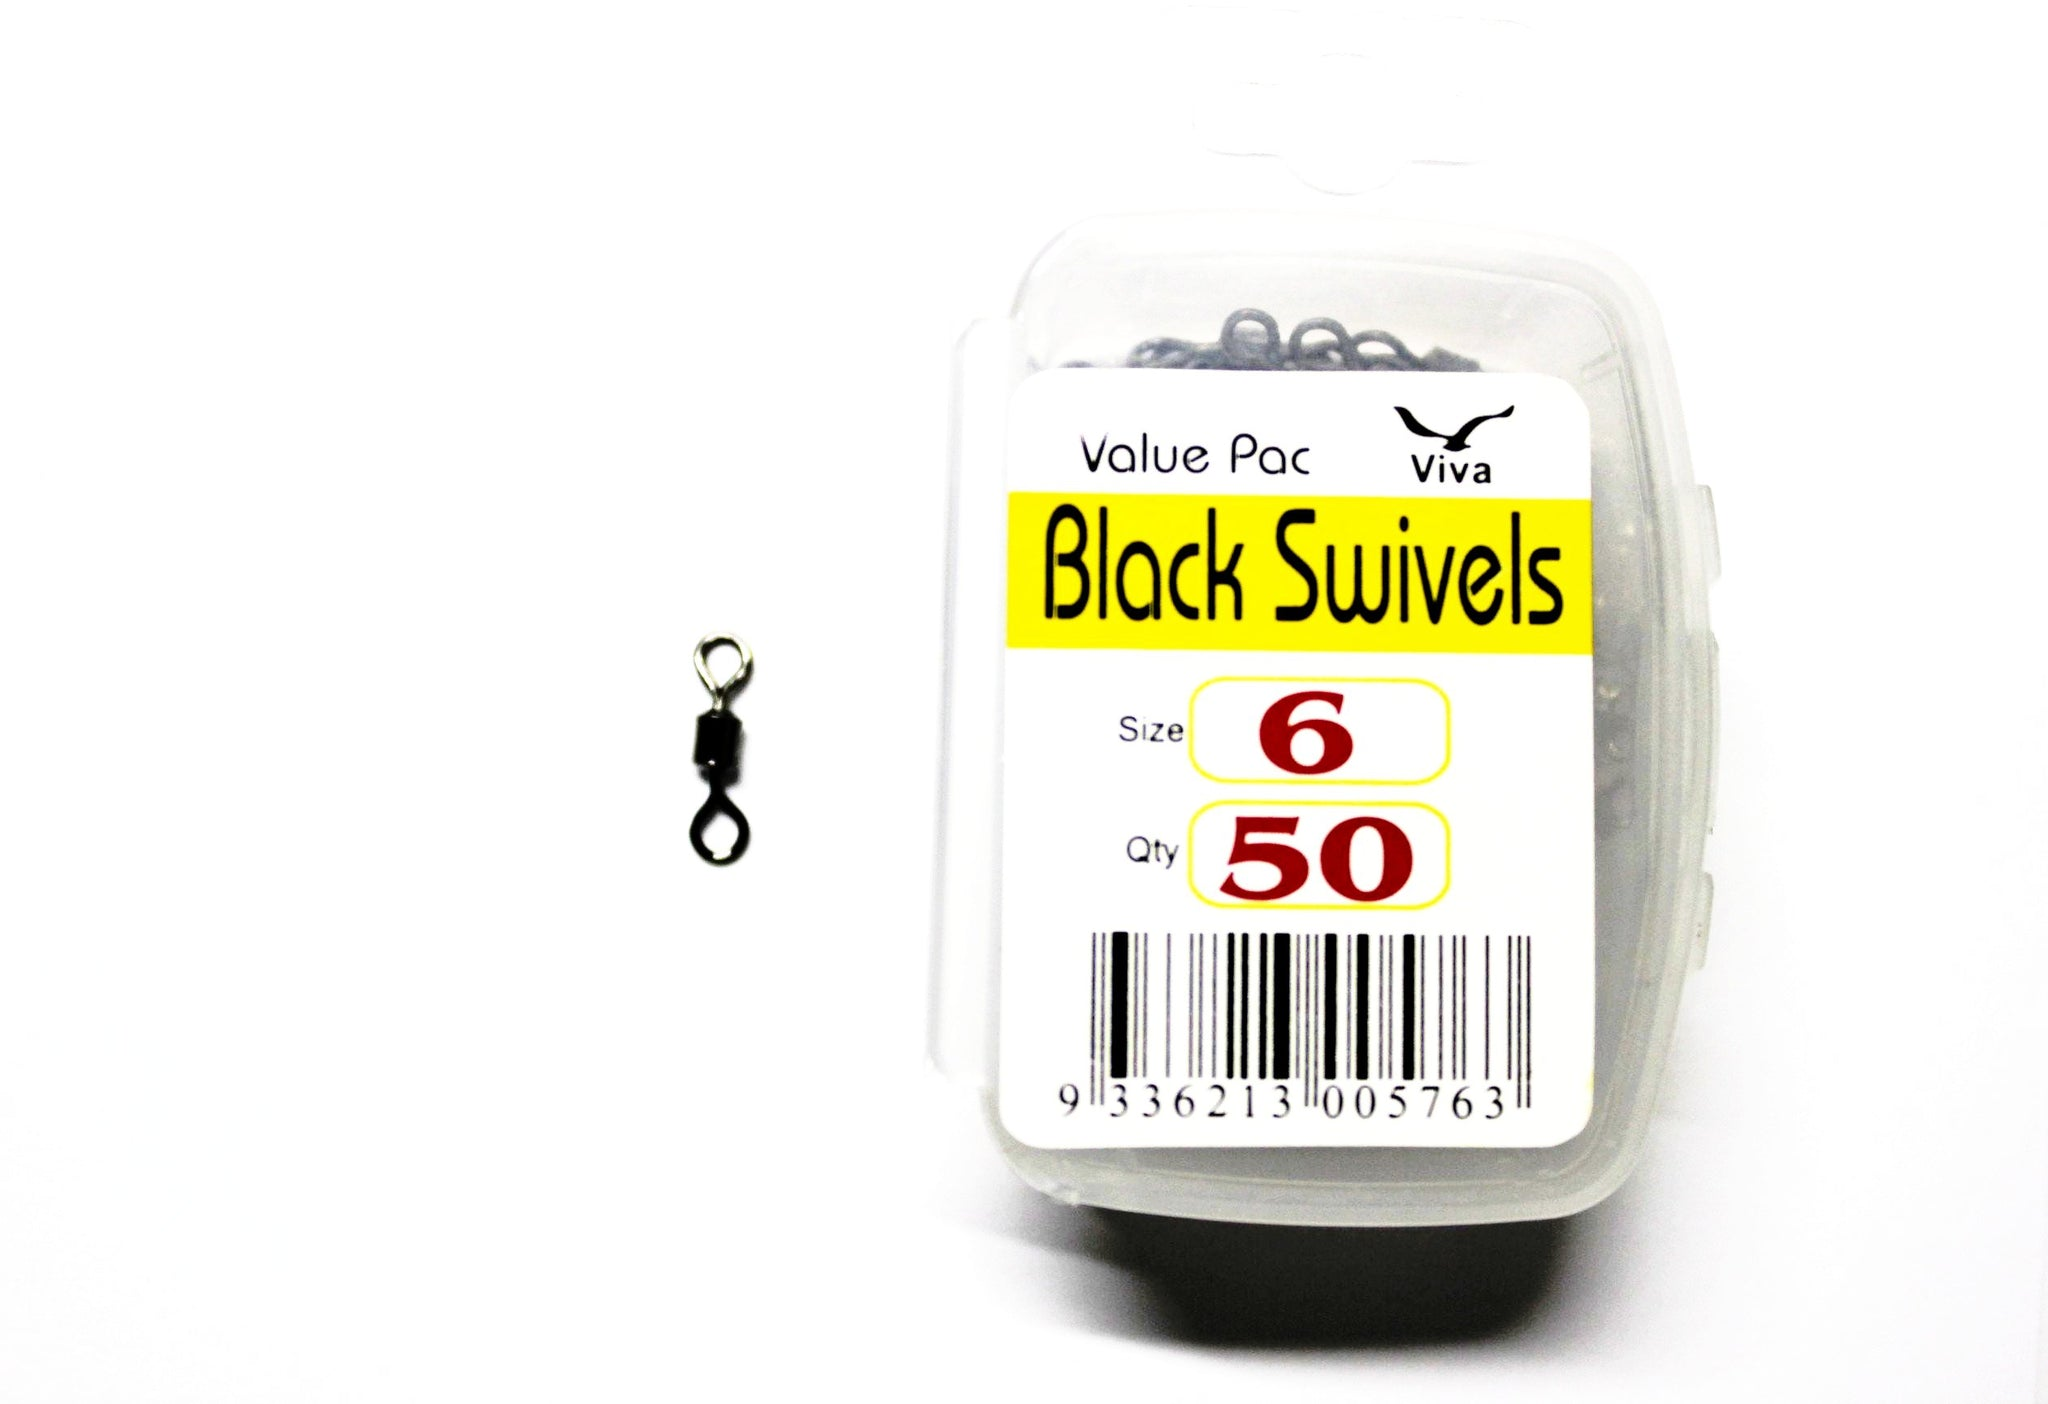 Viva Tackle Value Pack Black Swivels